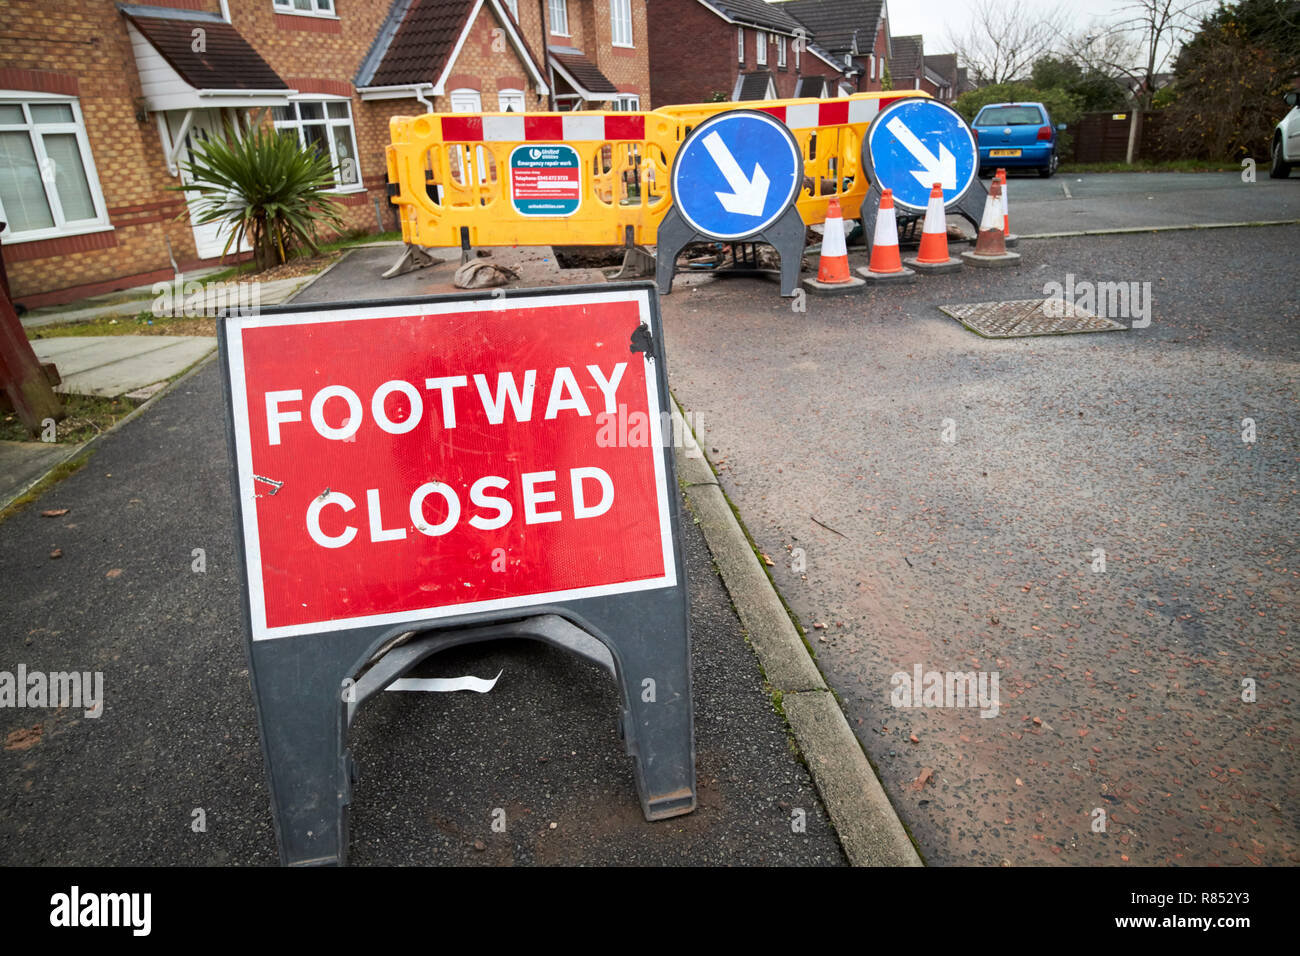 footway footpath closed for emergency utility repairs on a housing estate in merseyside england uk - Stock Image